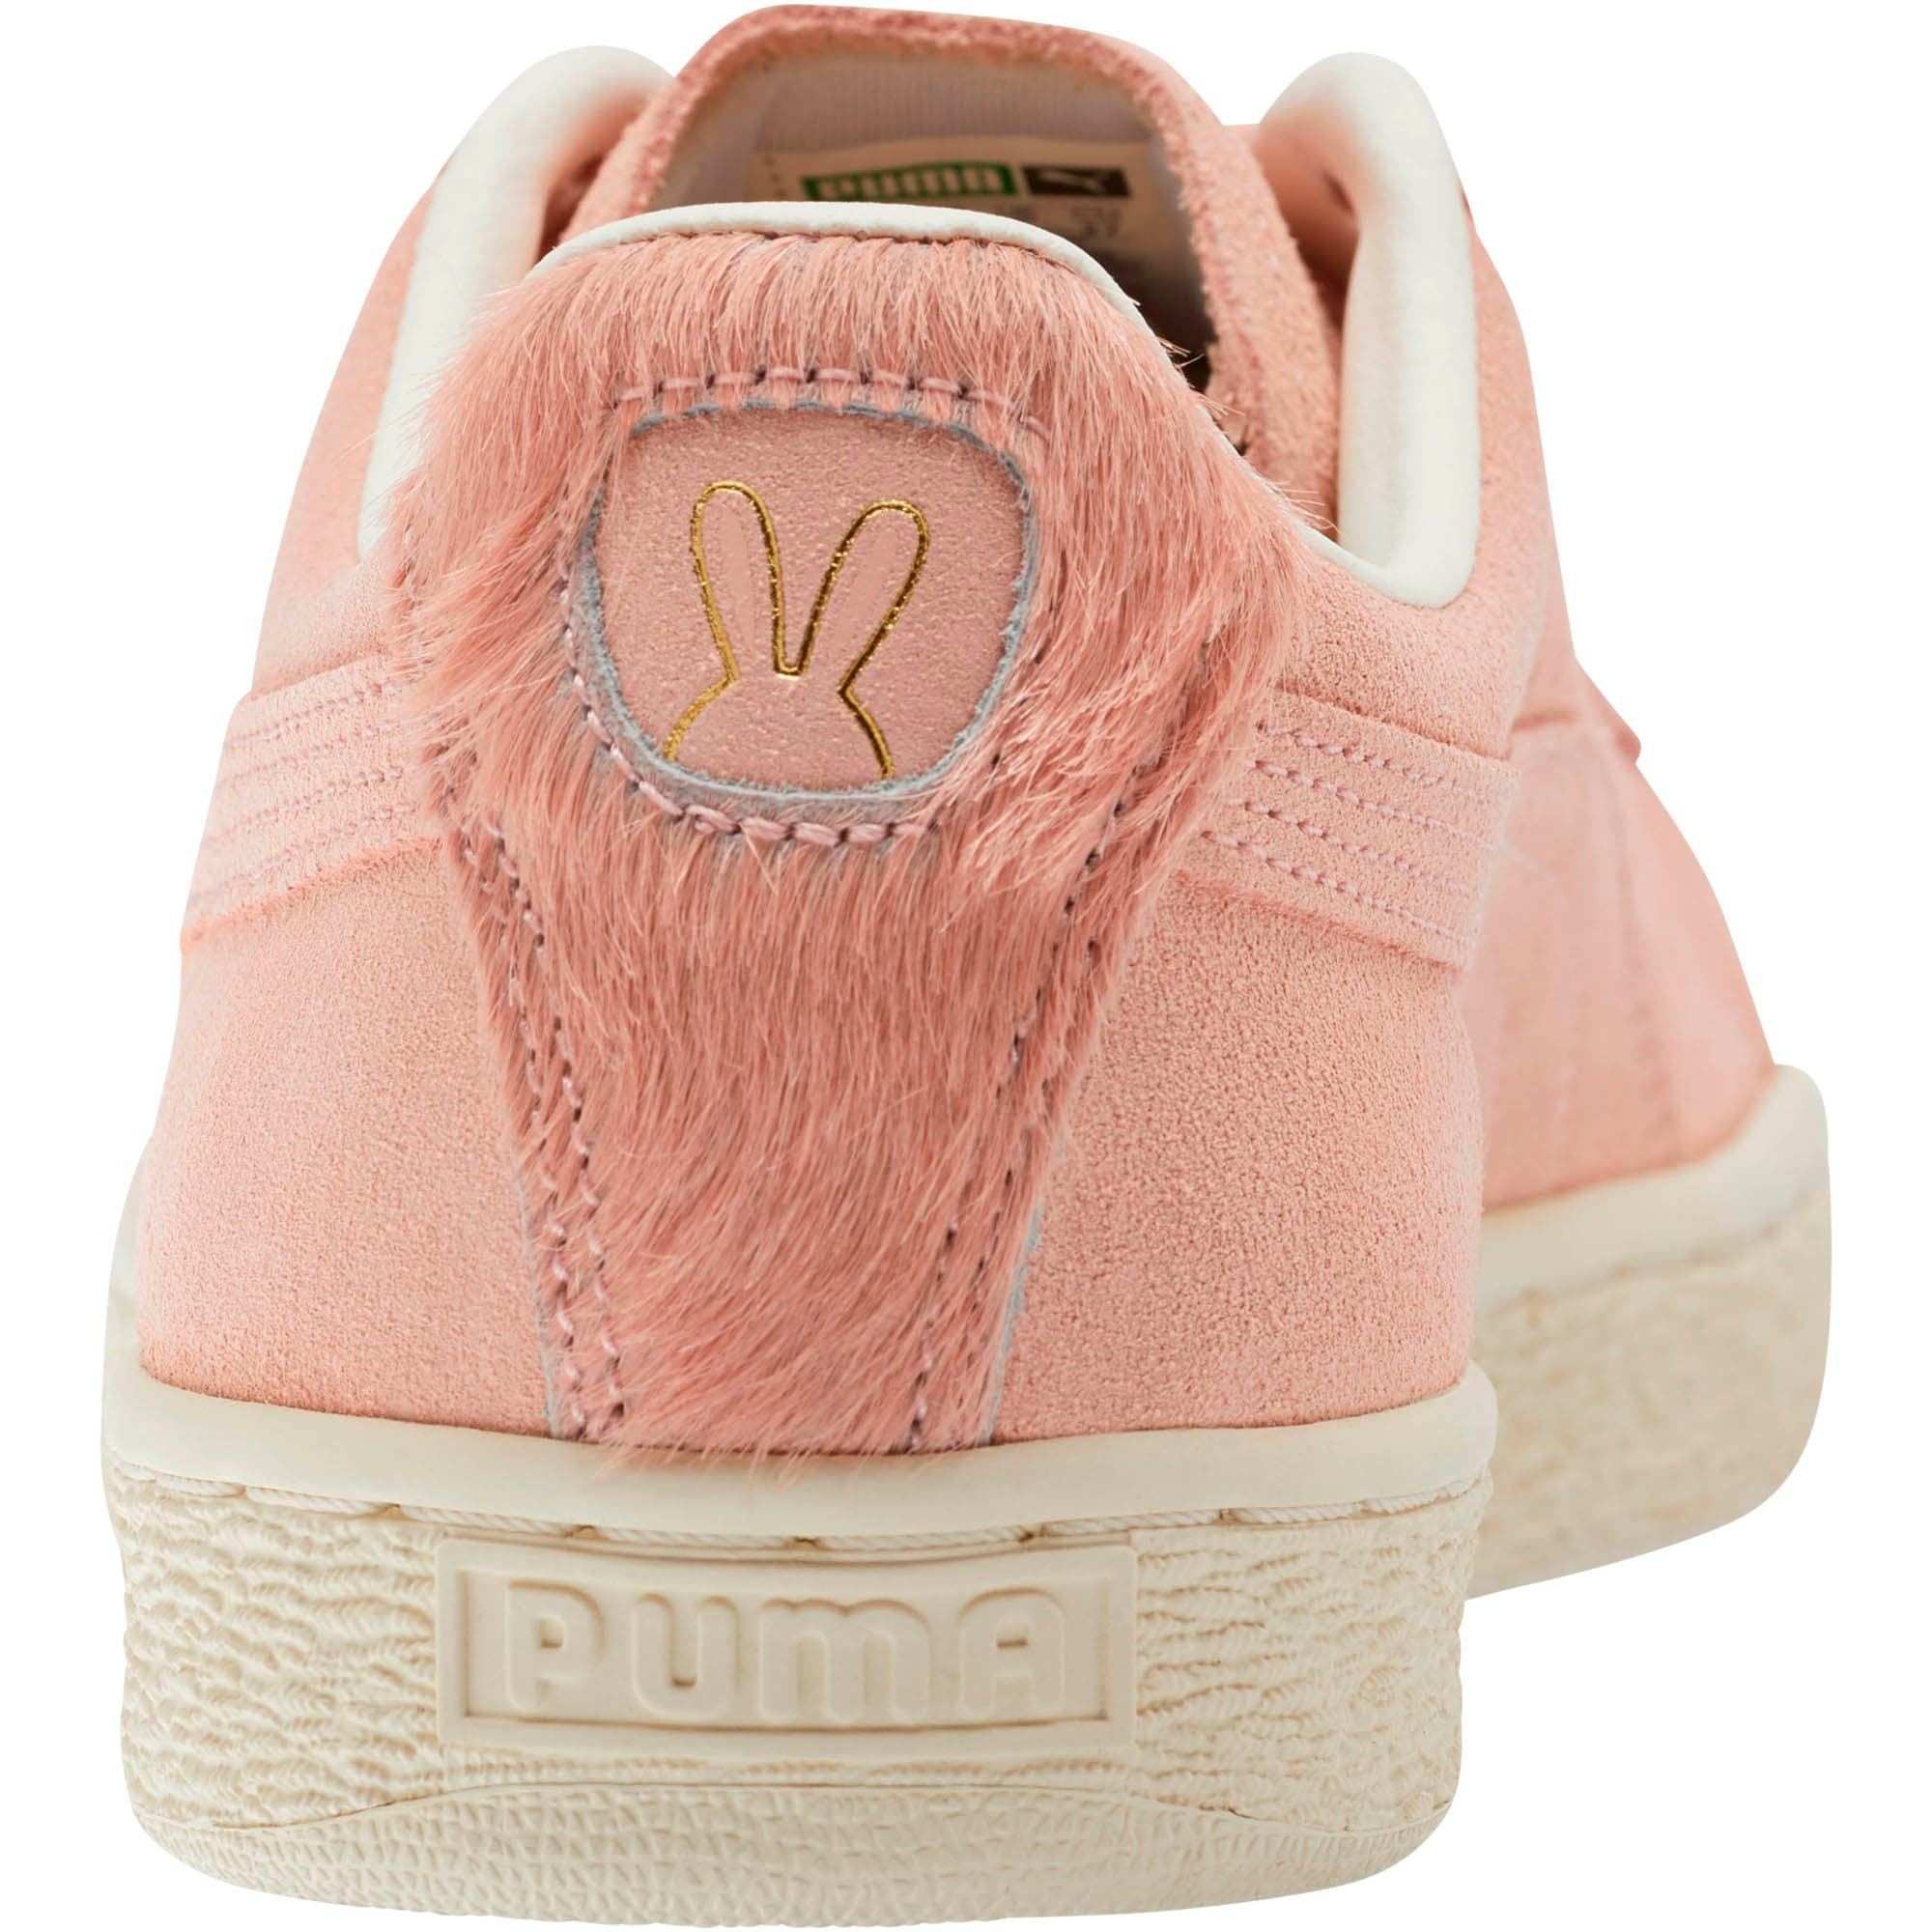 Thumbnail 3 of Suede Classic Easter Sneakers, Coral Cloud-Whisper White, medium